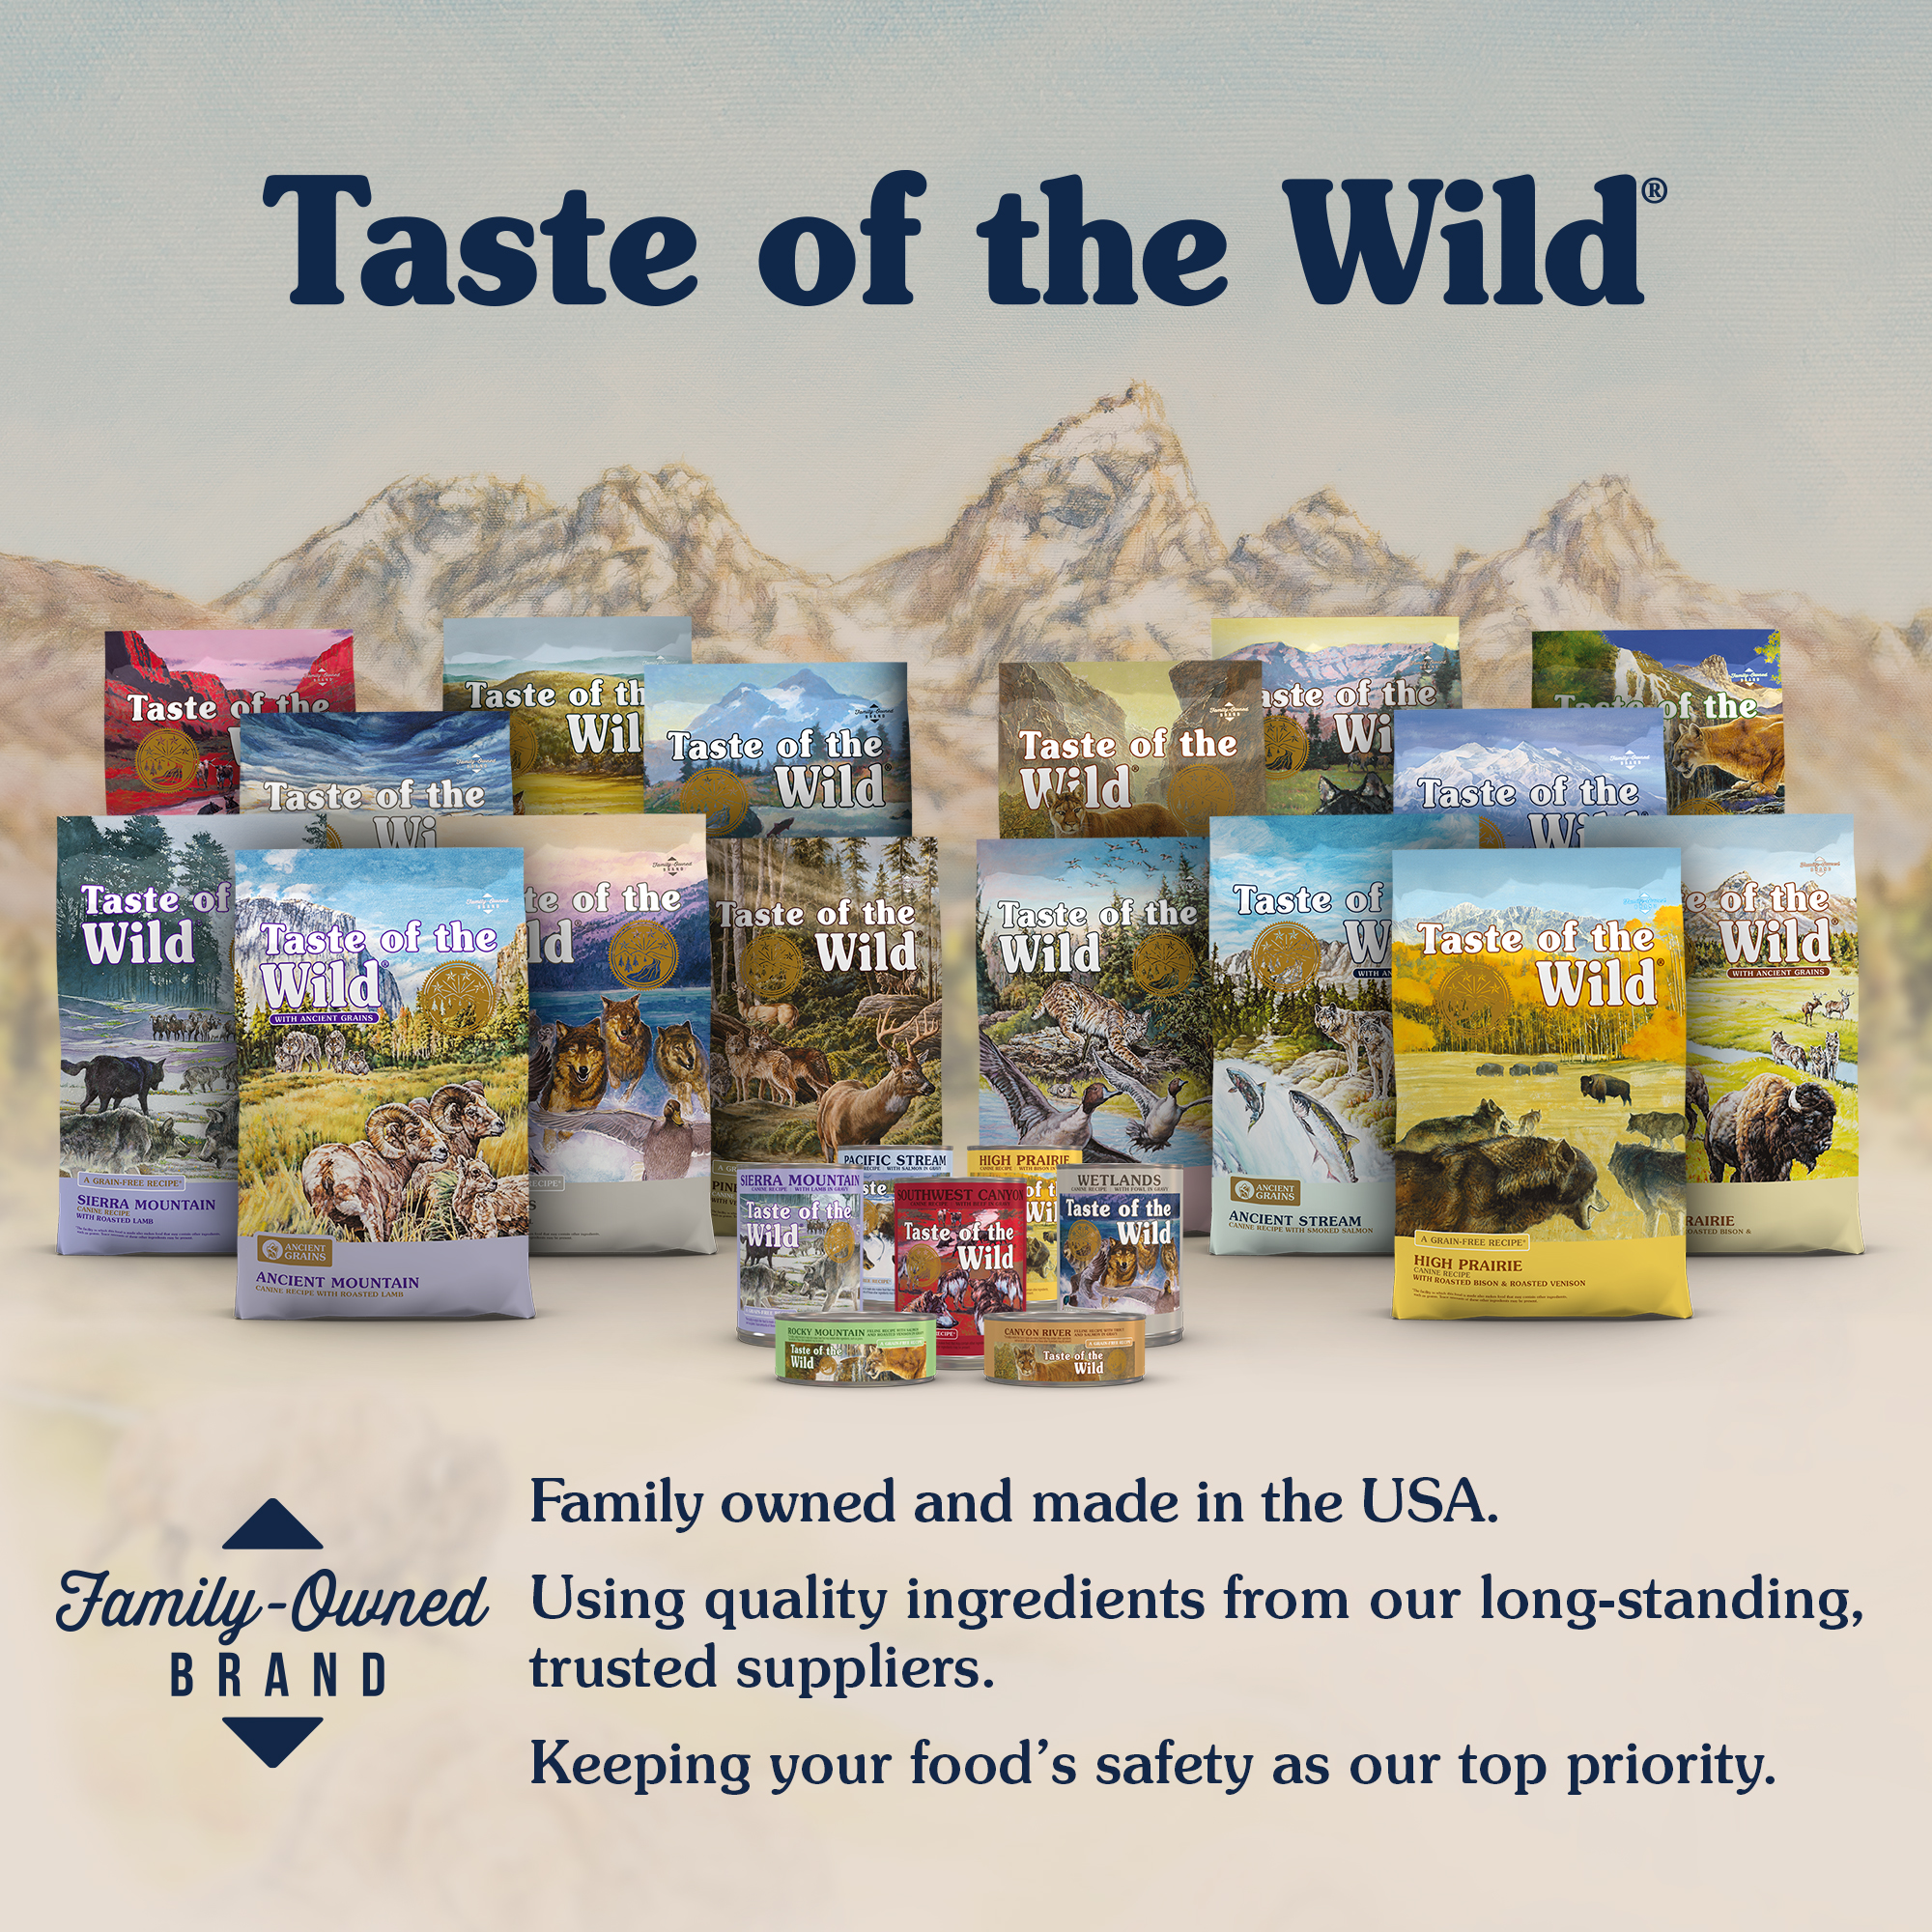 Bags and Cans of Taste of the Wild Pet Food   Taste of the Wild